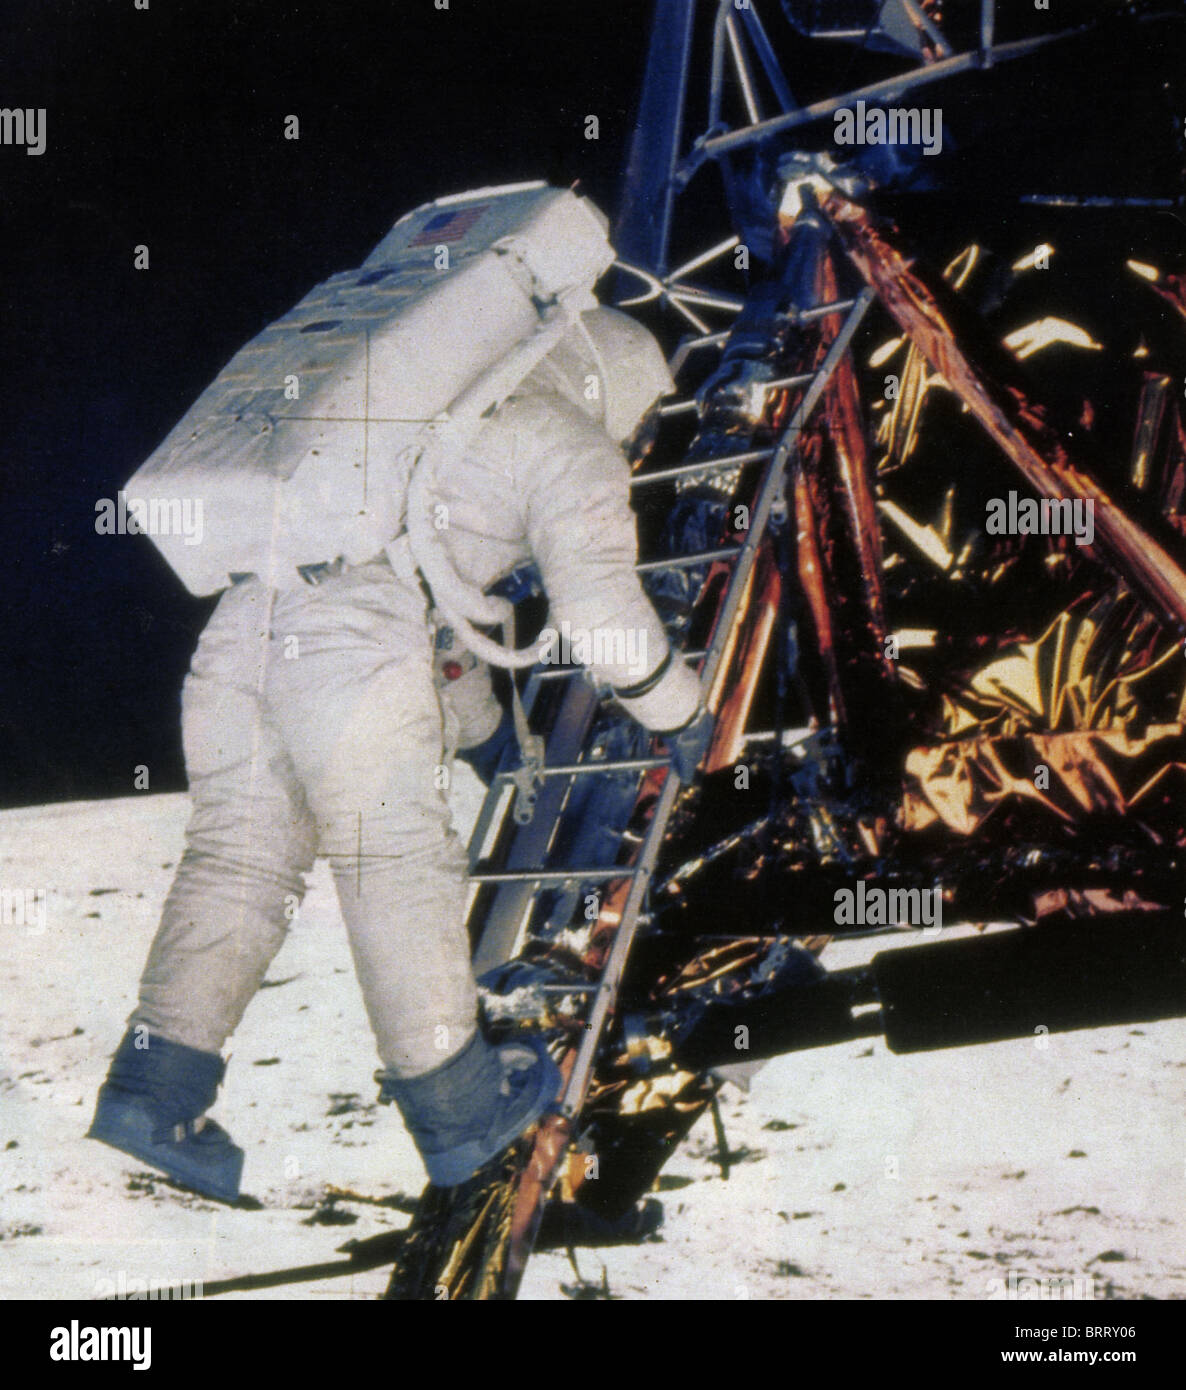 NEIL ARMSTRONG leaving the Apollo Lunar Module during the Apollo 11 landing in July 1969 - Stock Image